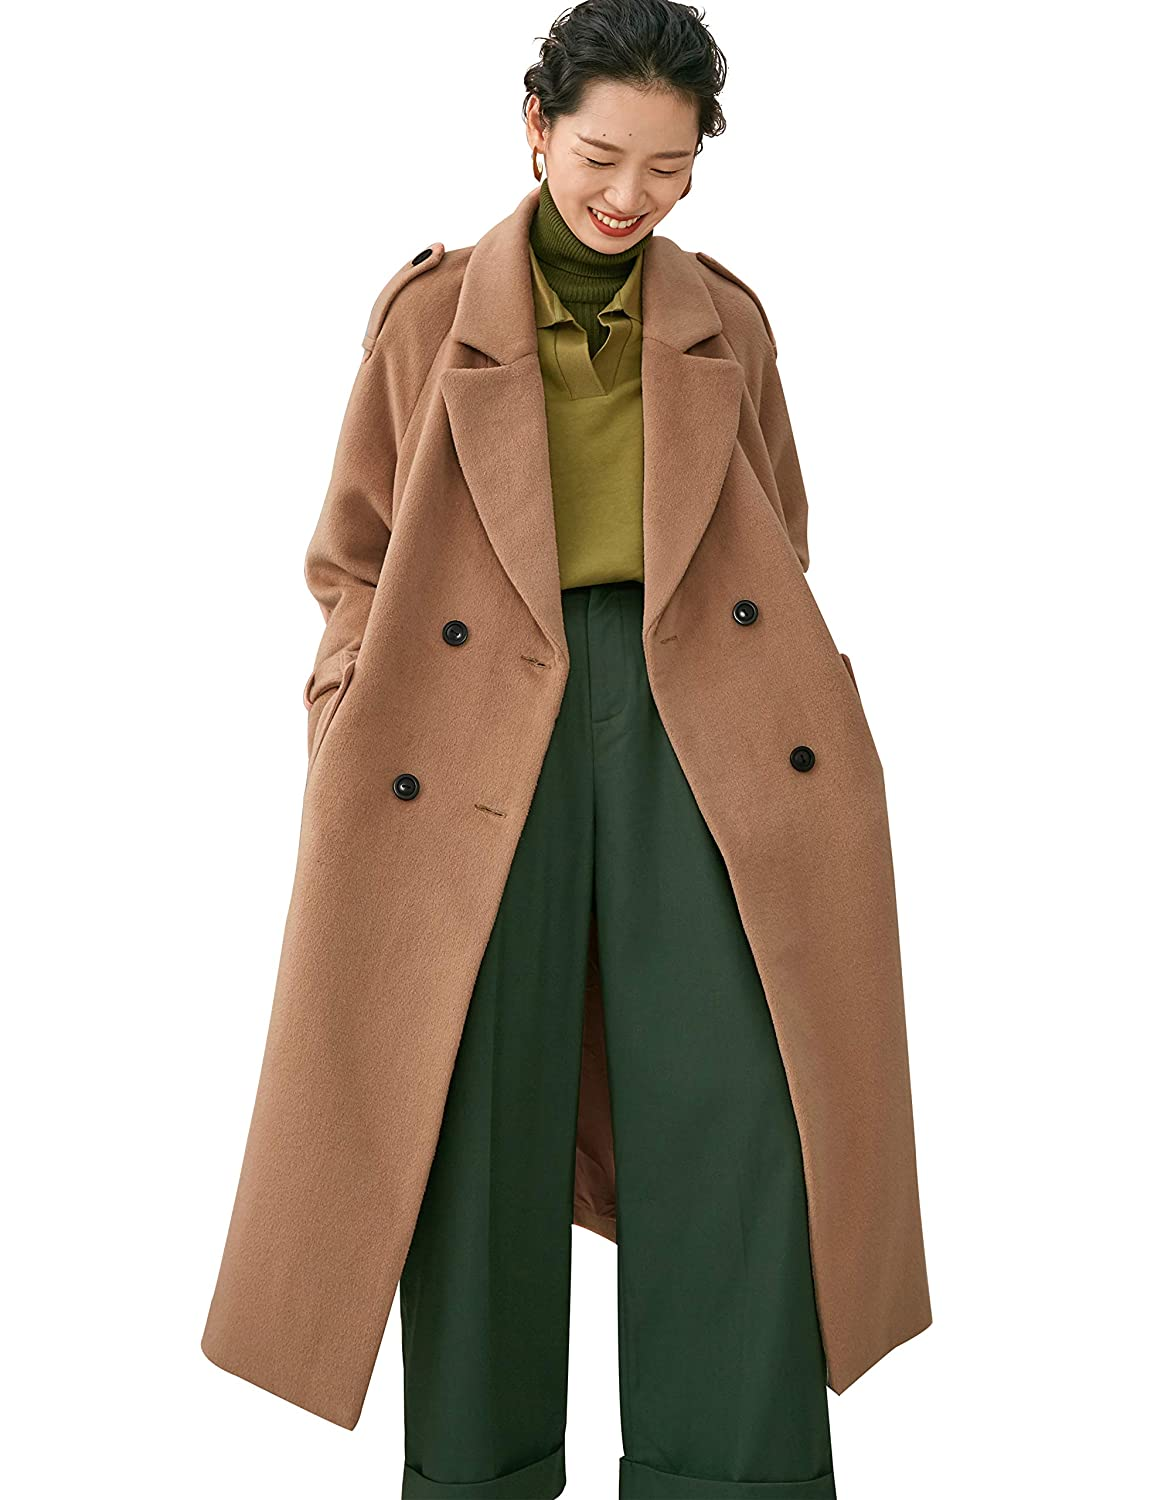 943a1d3bb0f Amazon.com: Elf Sack Womens Long Wool Coat Double Breasted Outerwear Winter  Warm Trench Jacket: Clothing